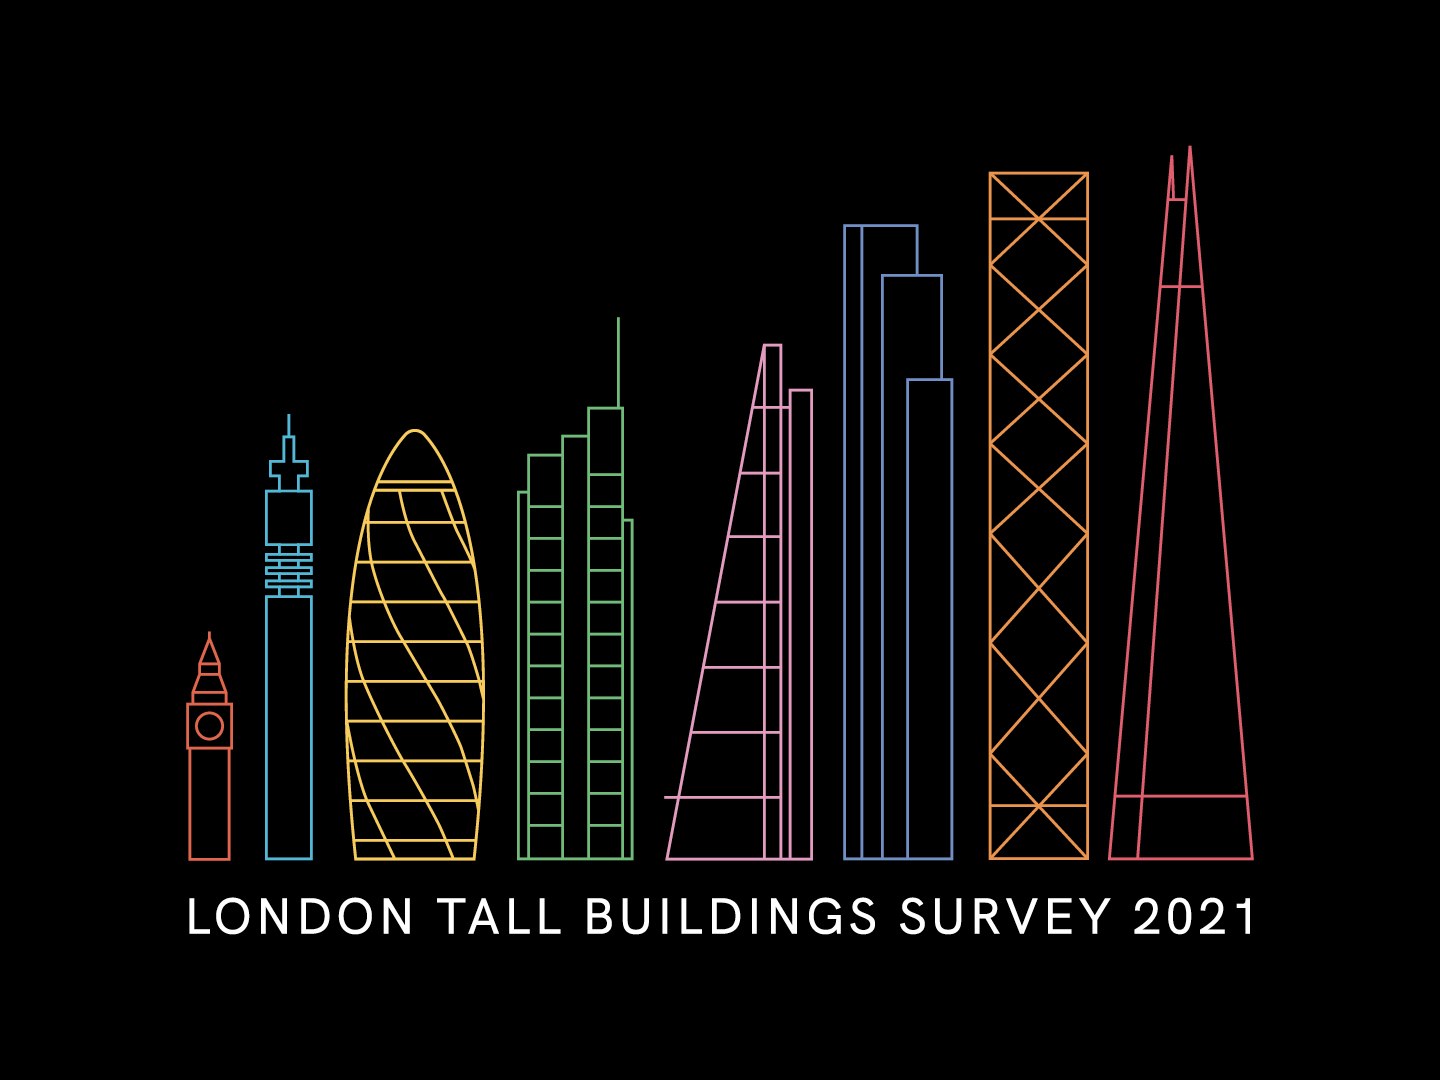 Londons Tall Buildings Survey 2021